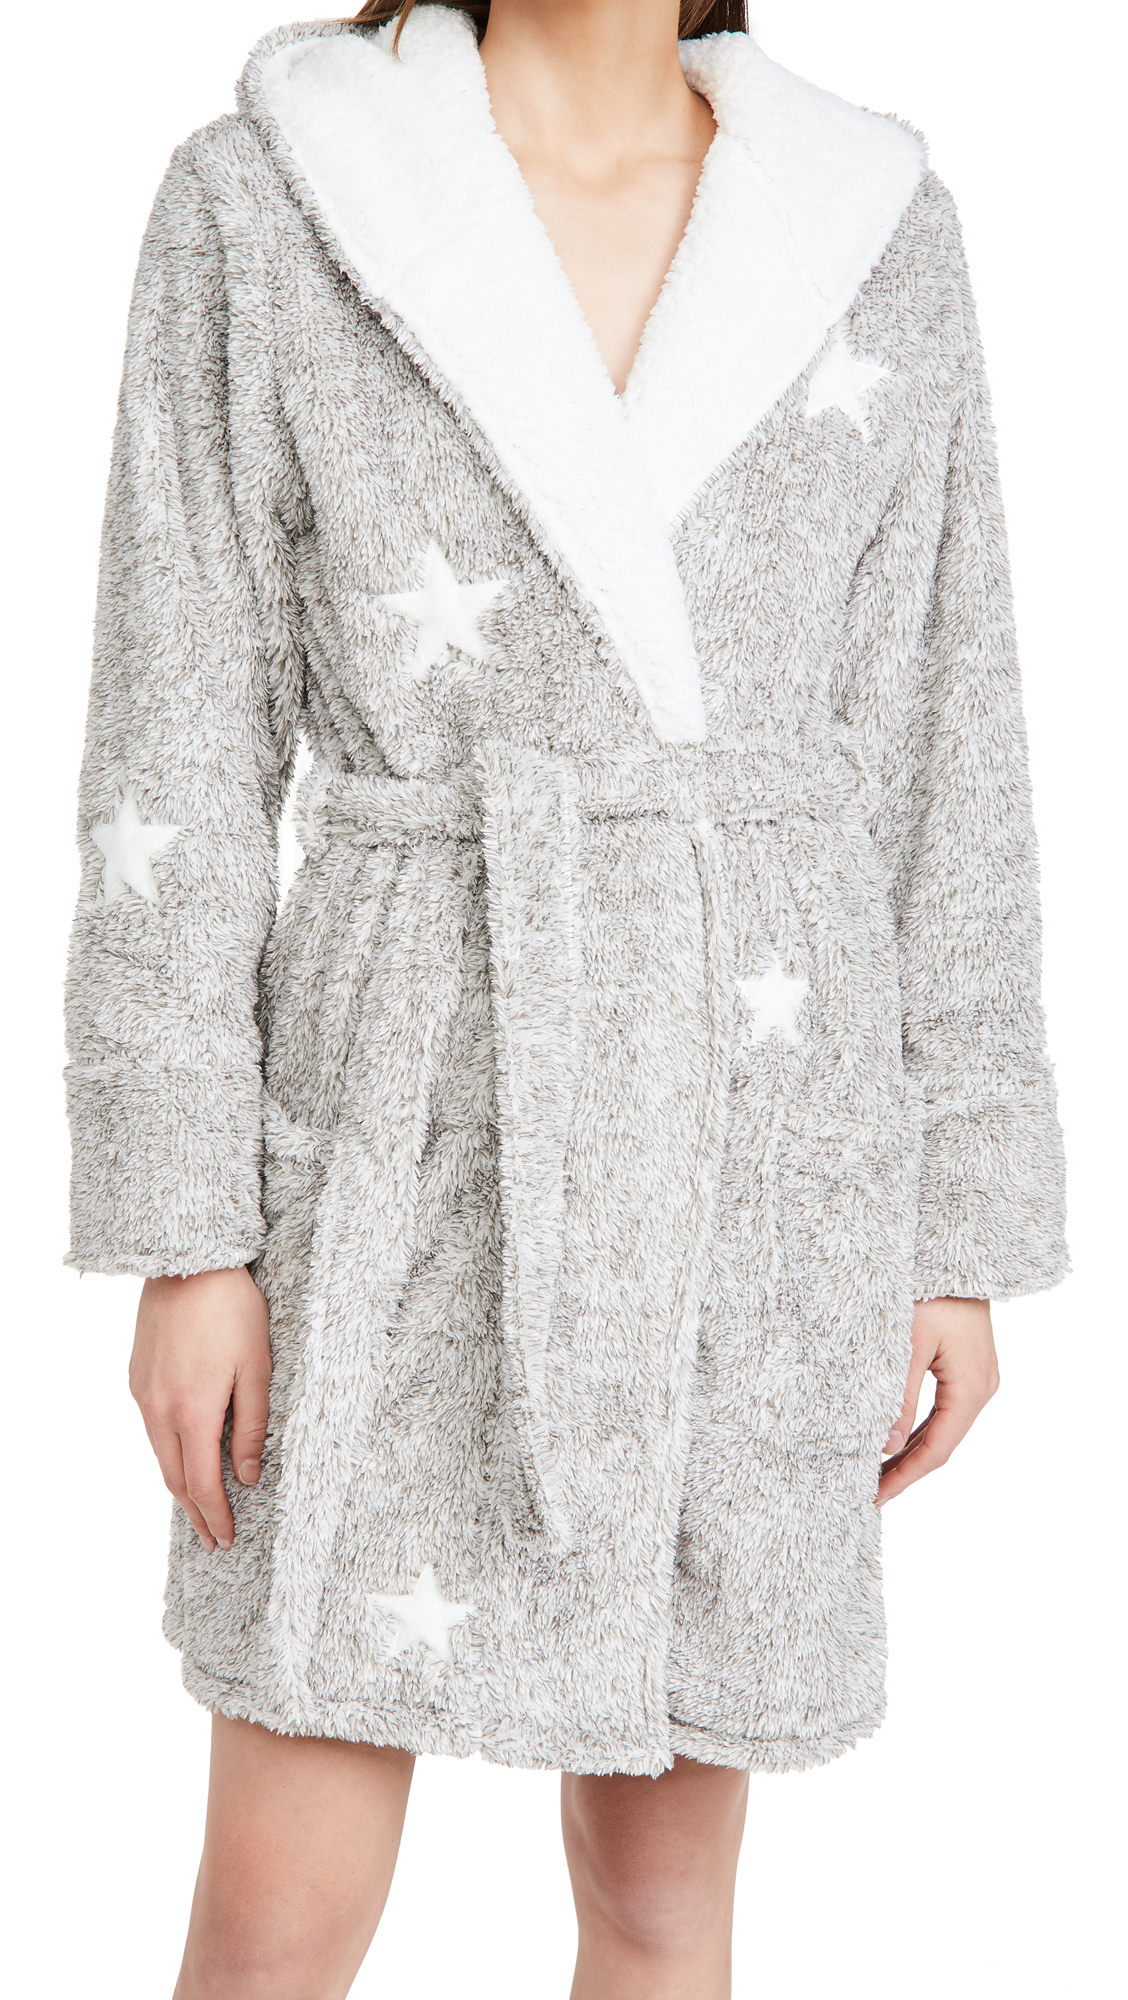 PJ Salvage Hooded Star Robe